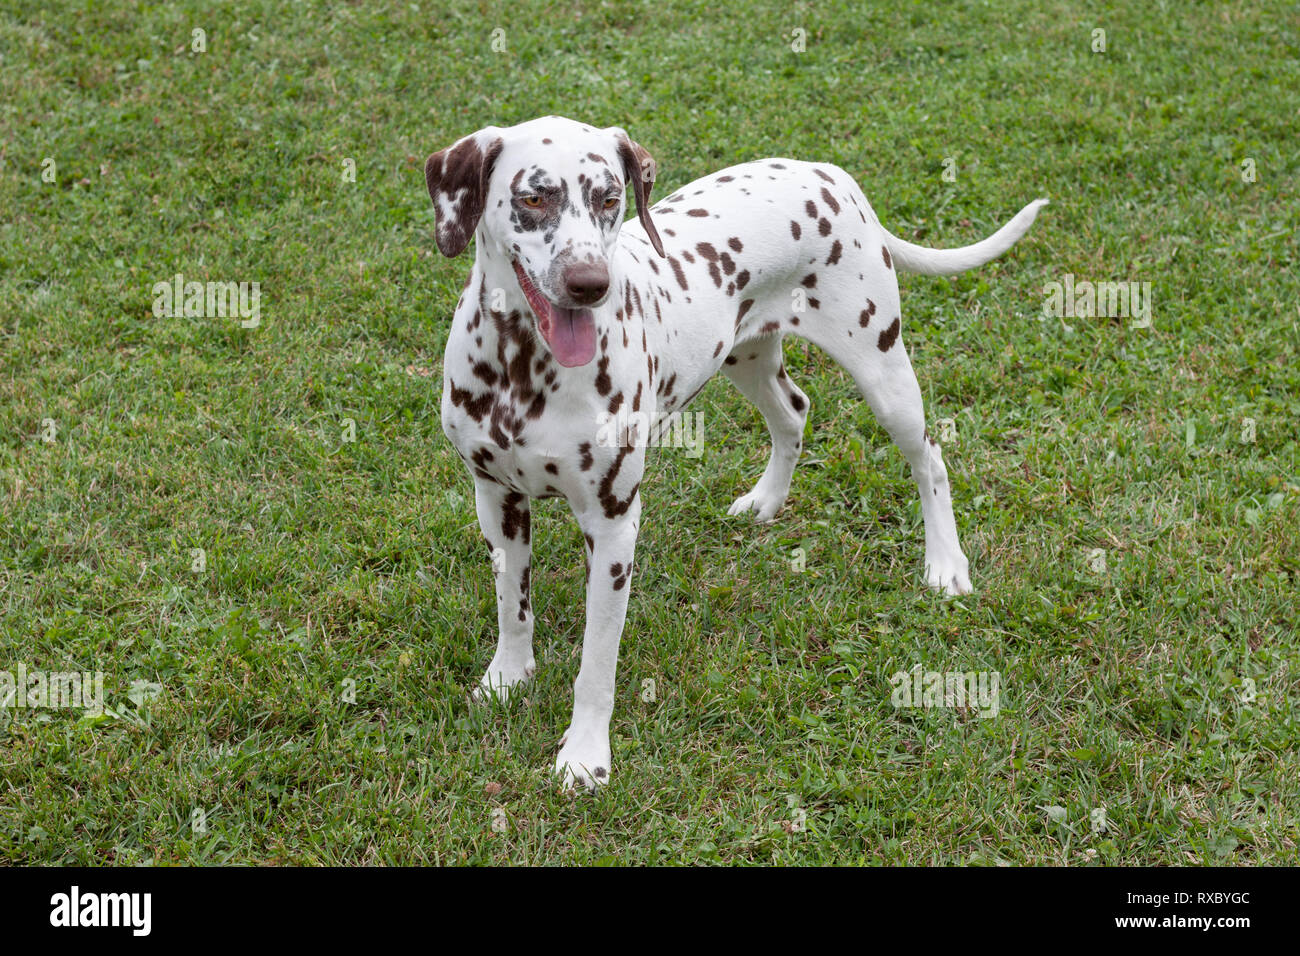 Cute dalmatian puppy is standing on a spring meadow. Pet animals. Purebred dog. - Stock Image